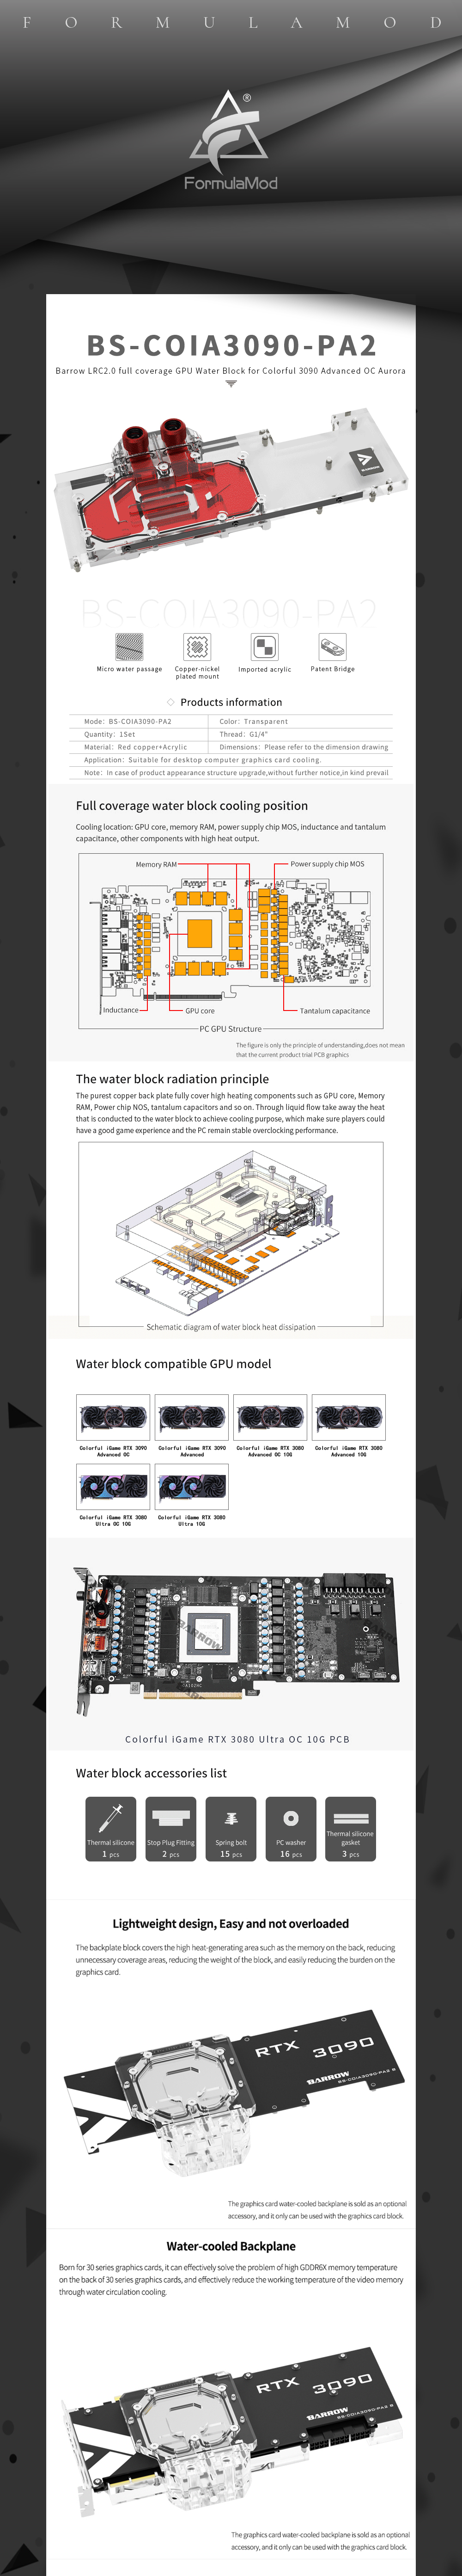 Barrow 3080 3090 Water Block Backplane for Colorful RTX 3090 3080 Advanced OC Water cooled Backplate, BS-COIA3090-PA2 B